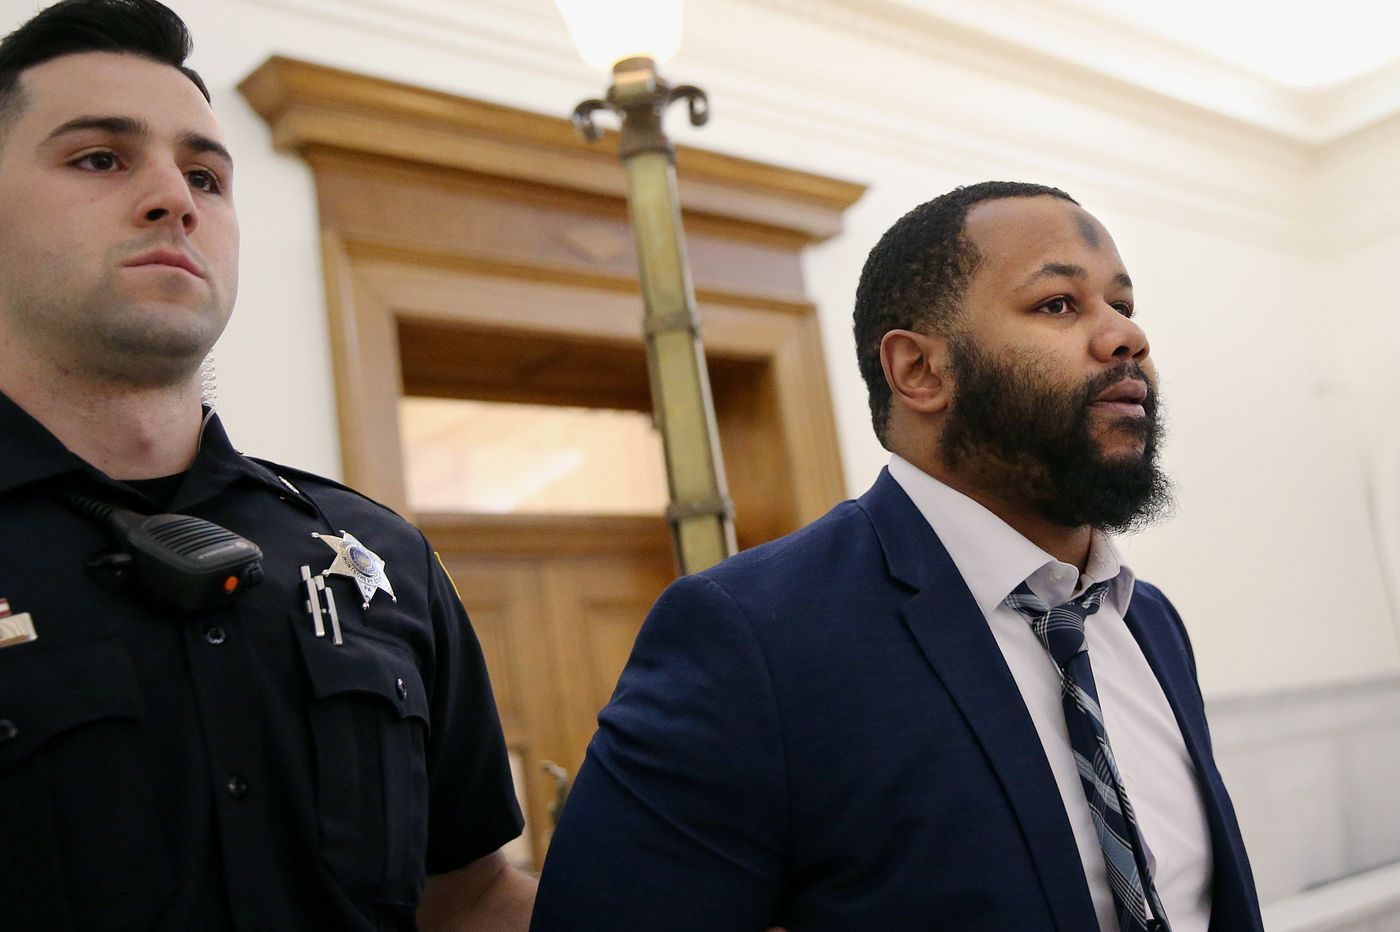 'Cold-blooded' violence or psychotic break? Questions linger as Walmart shooting trial begins